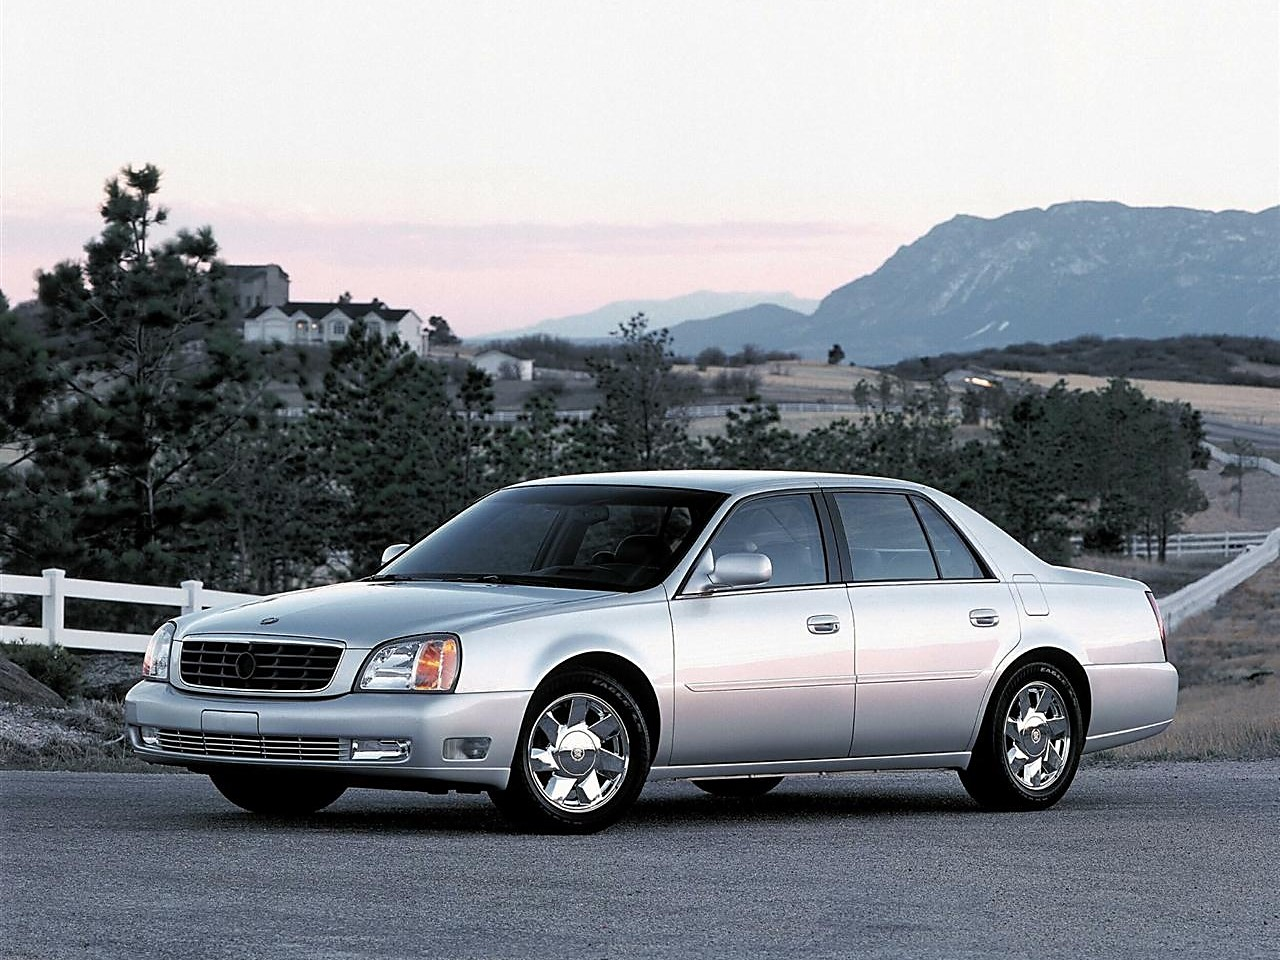 2002 Cadillac DeVille: The Last of the Big Guns